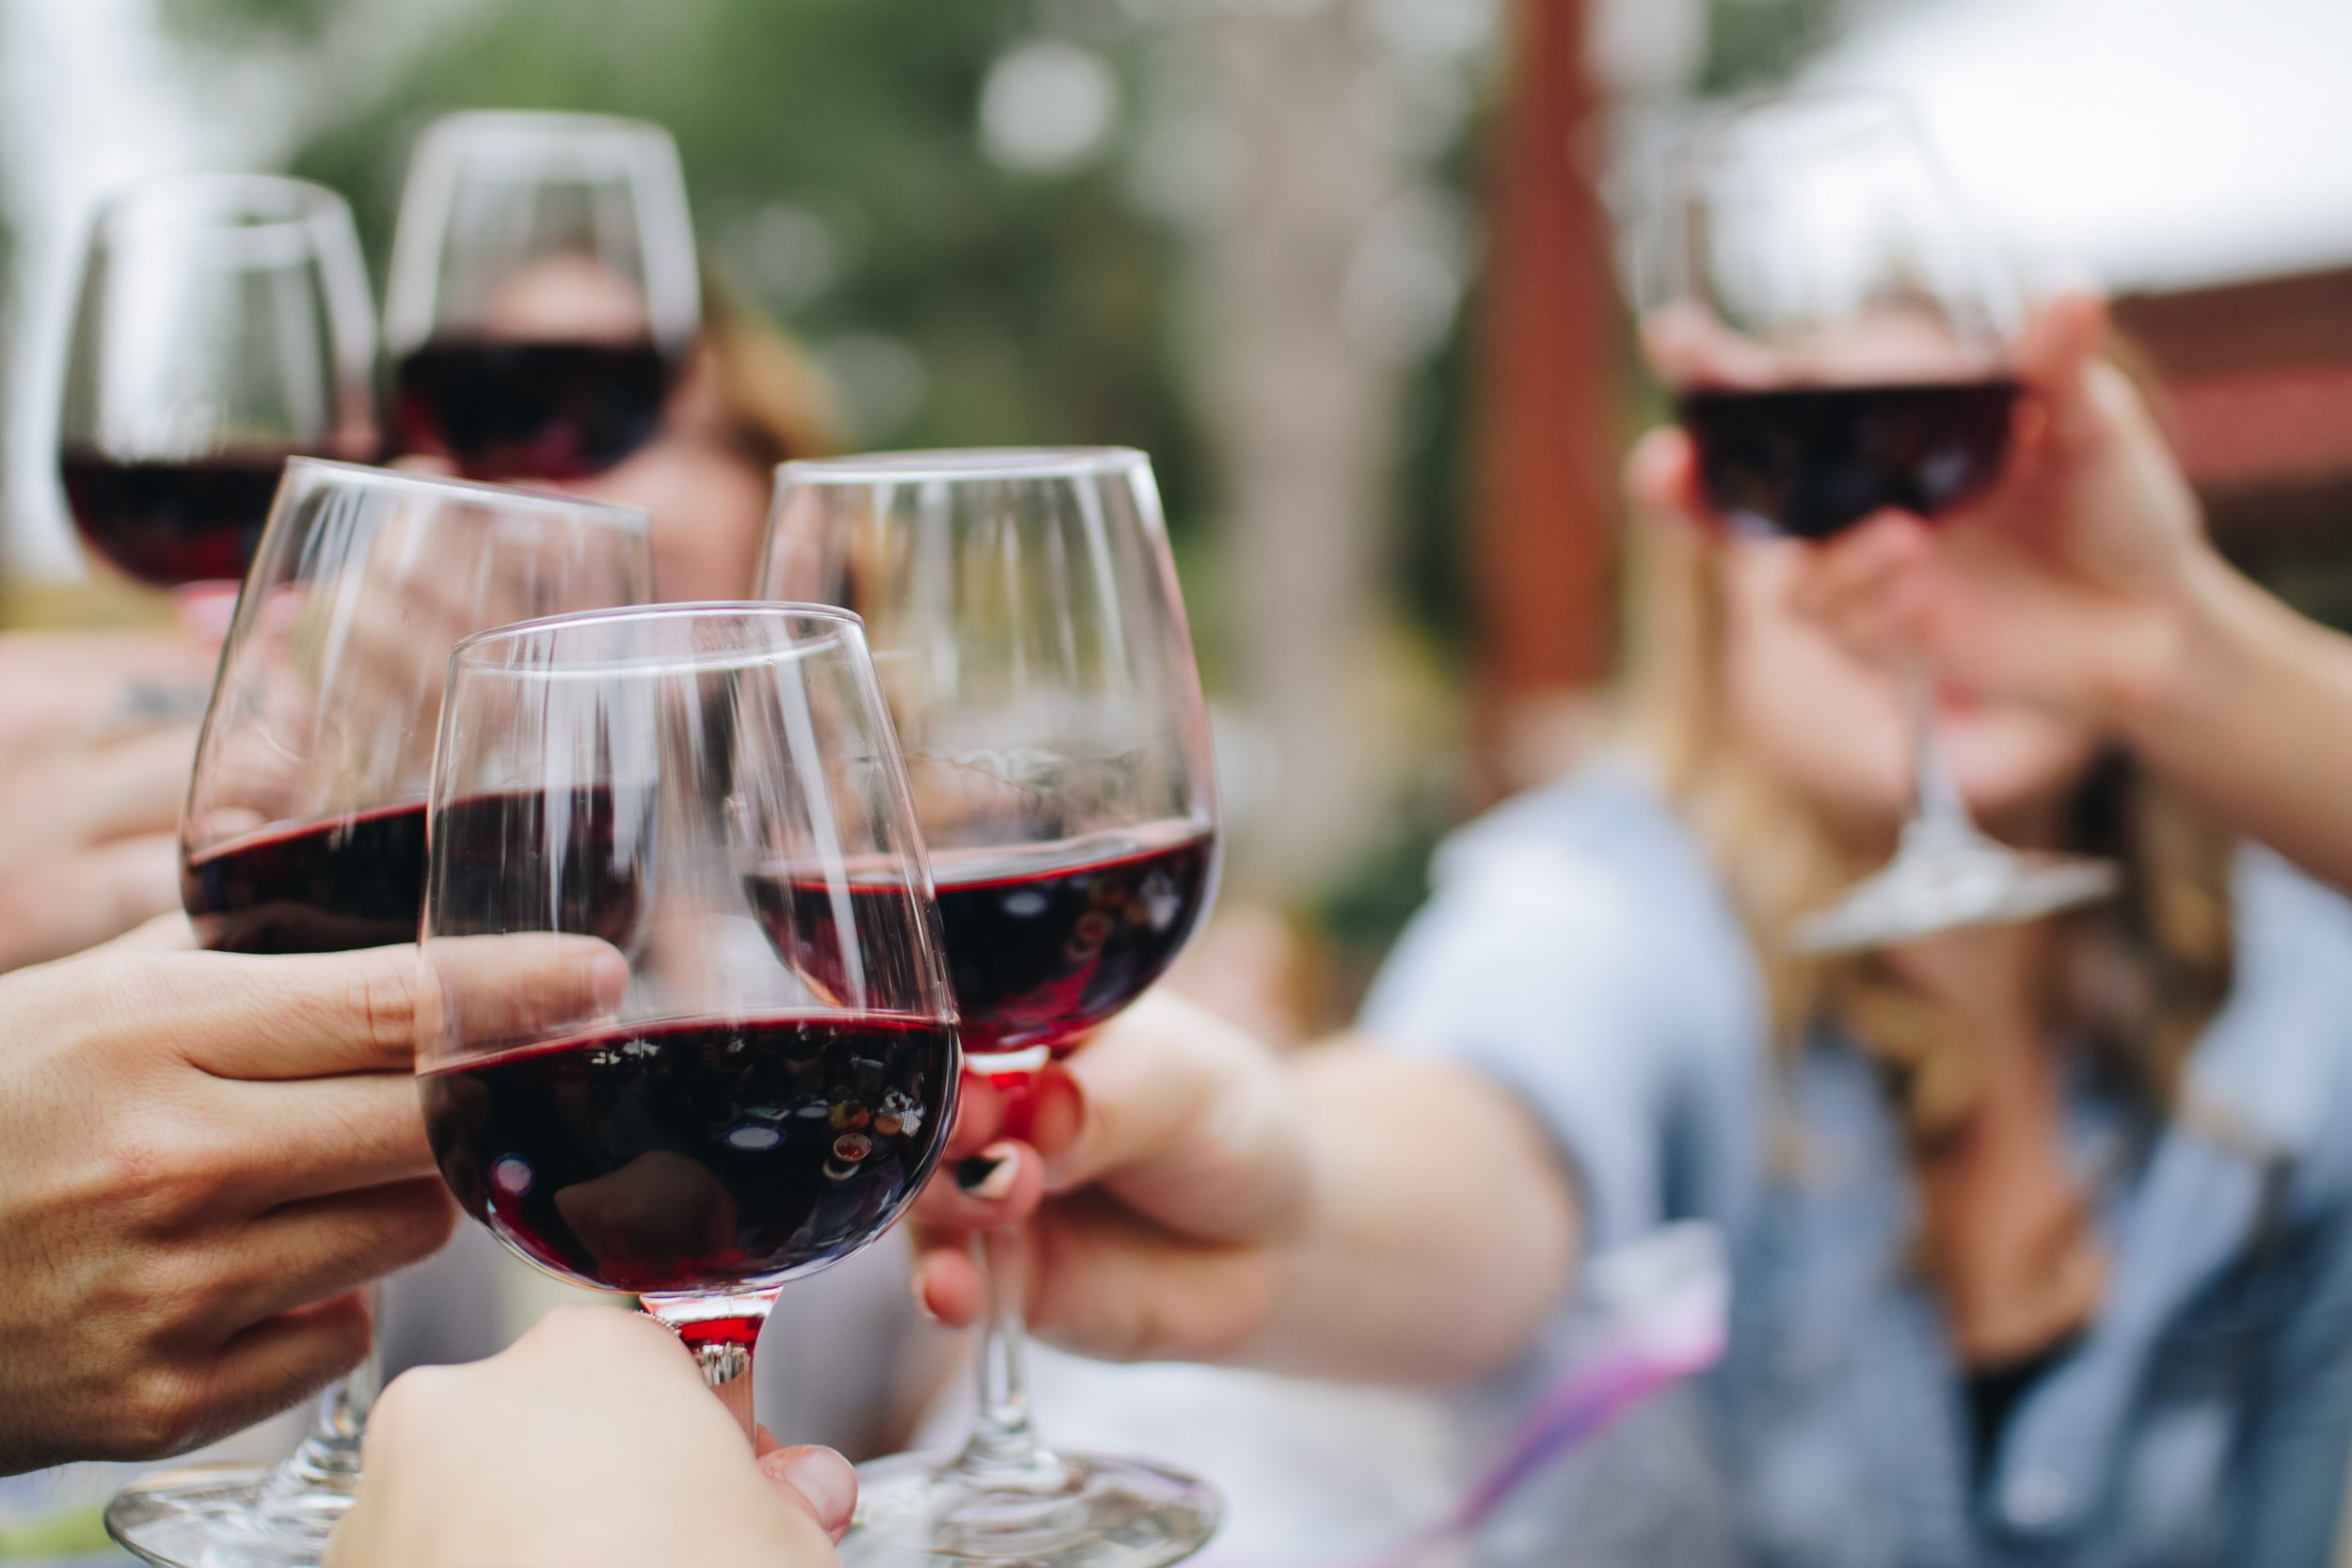 Livermore Valley Wine Tasting Group Tours - Picnic lunch and wine tasting fees included.